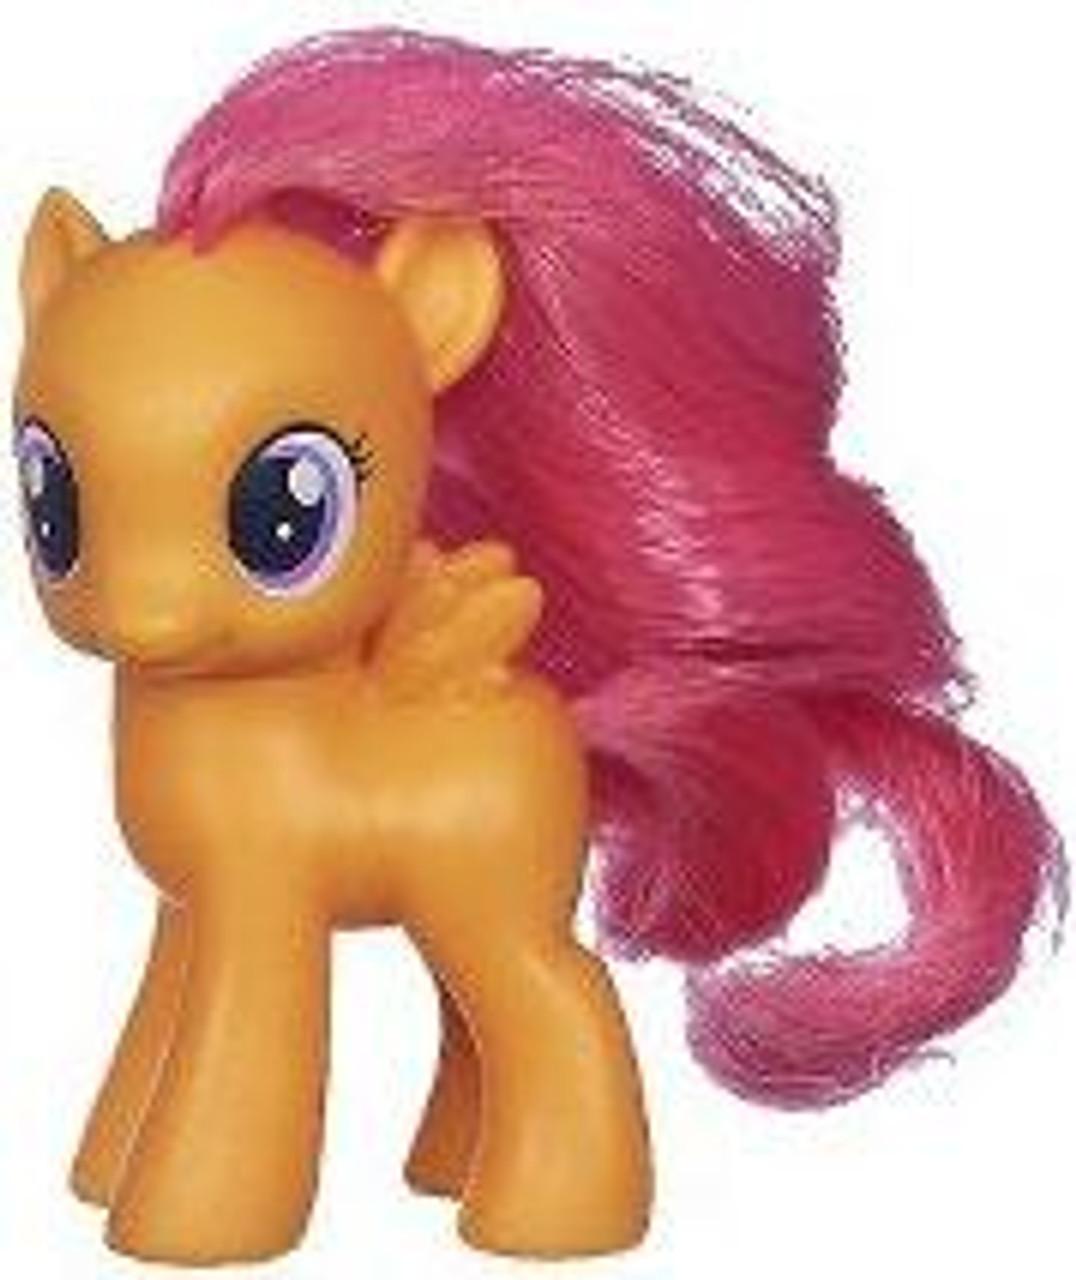 My Little Pony 3 Inch Loose Scootaloo 3 Collectible Figure Loose Hasbro Toys Toywiz By castletonsnob, october 13, 2017. hasbro